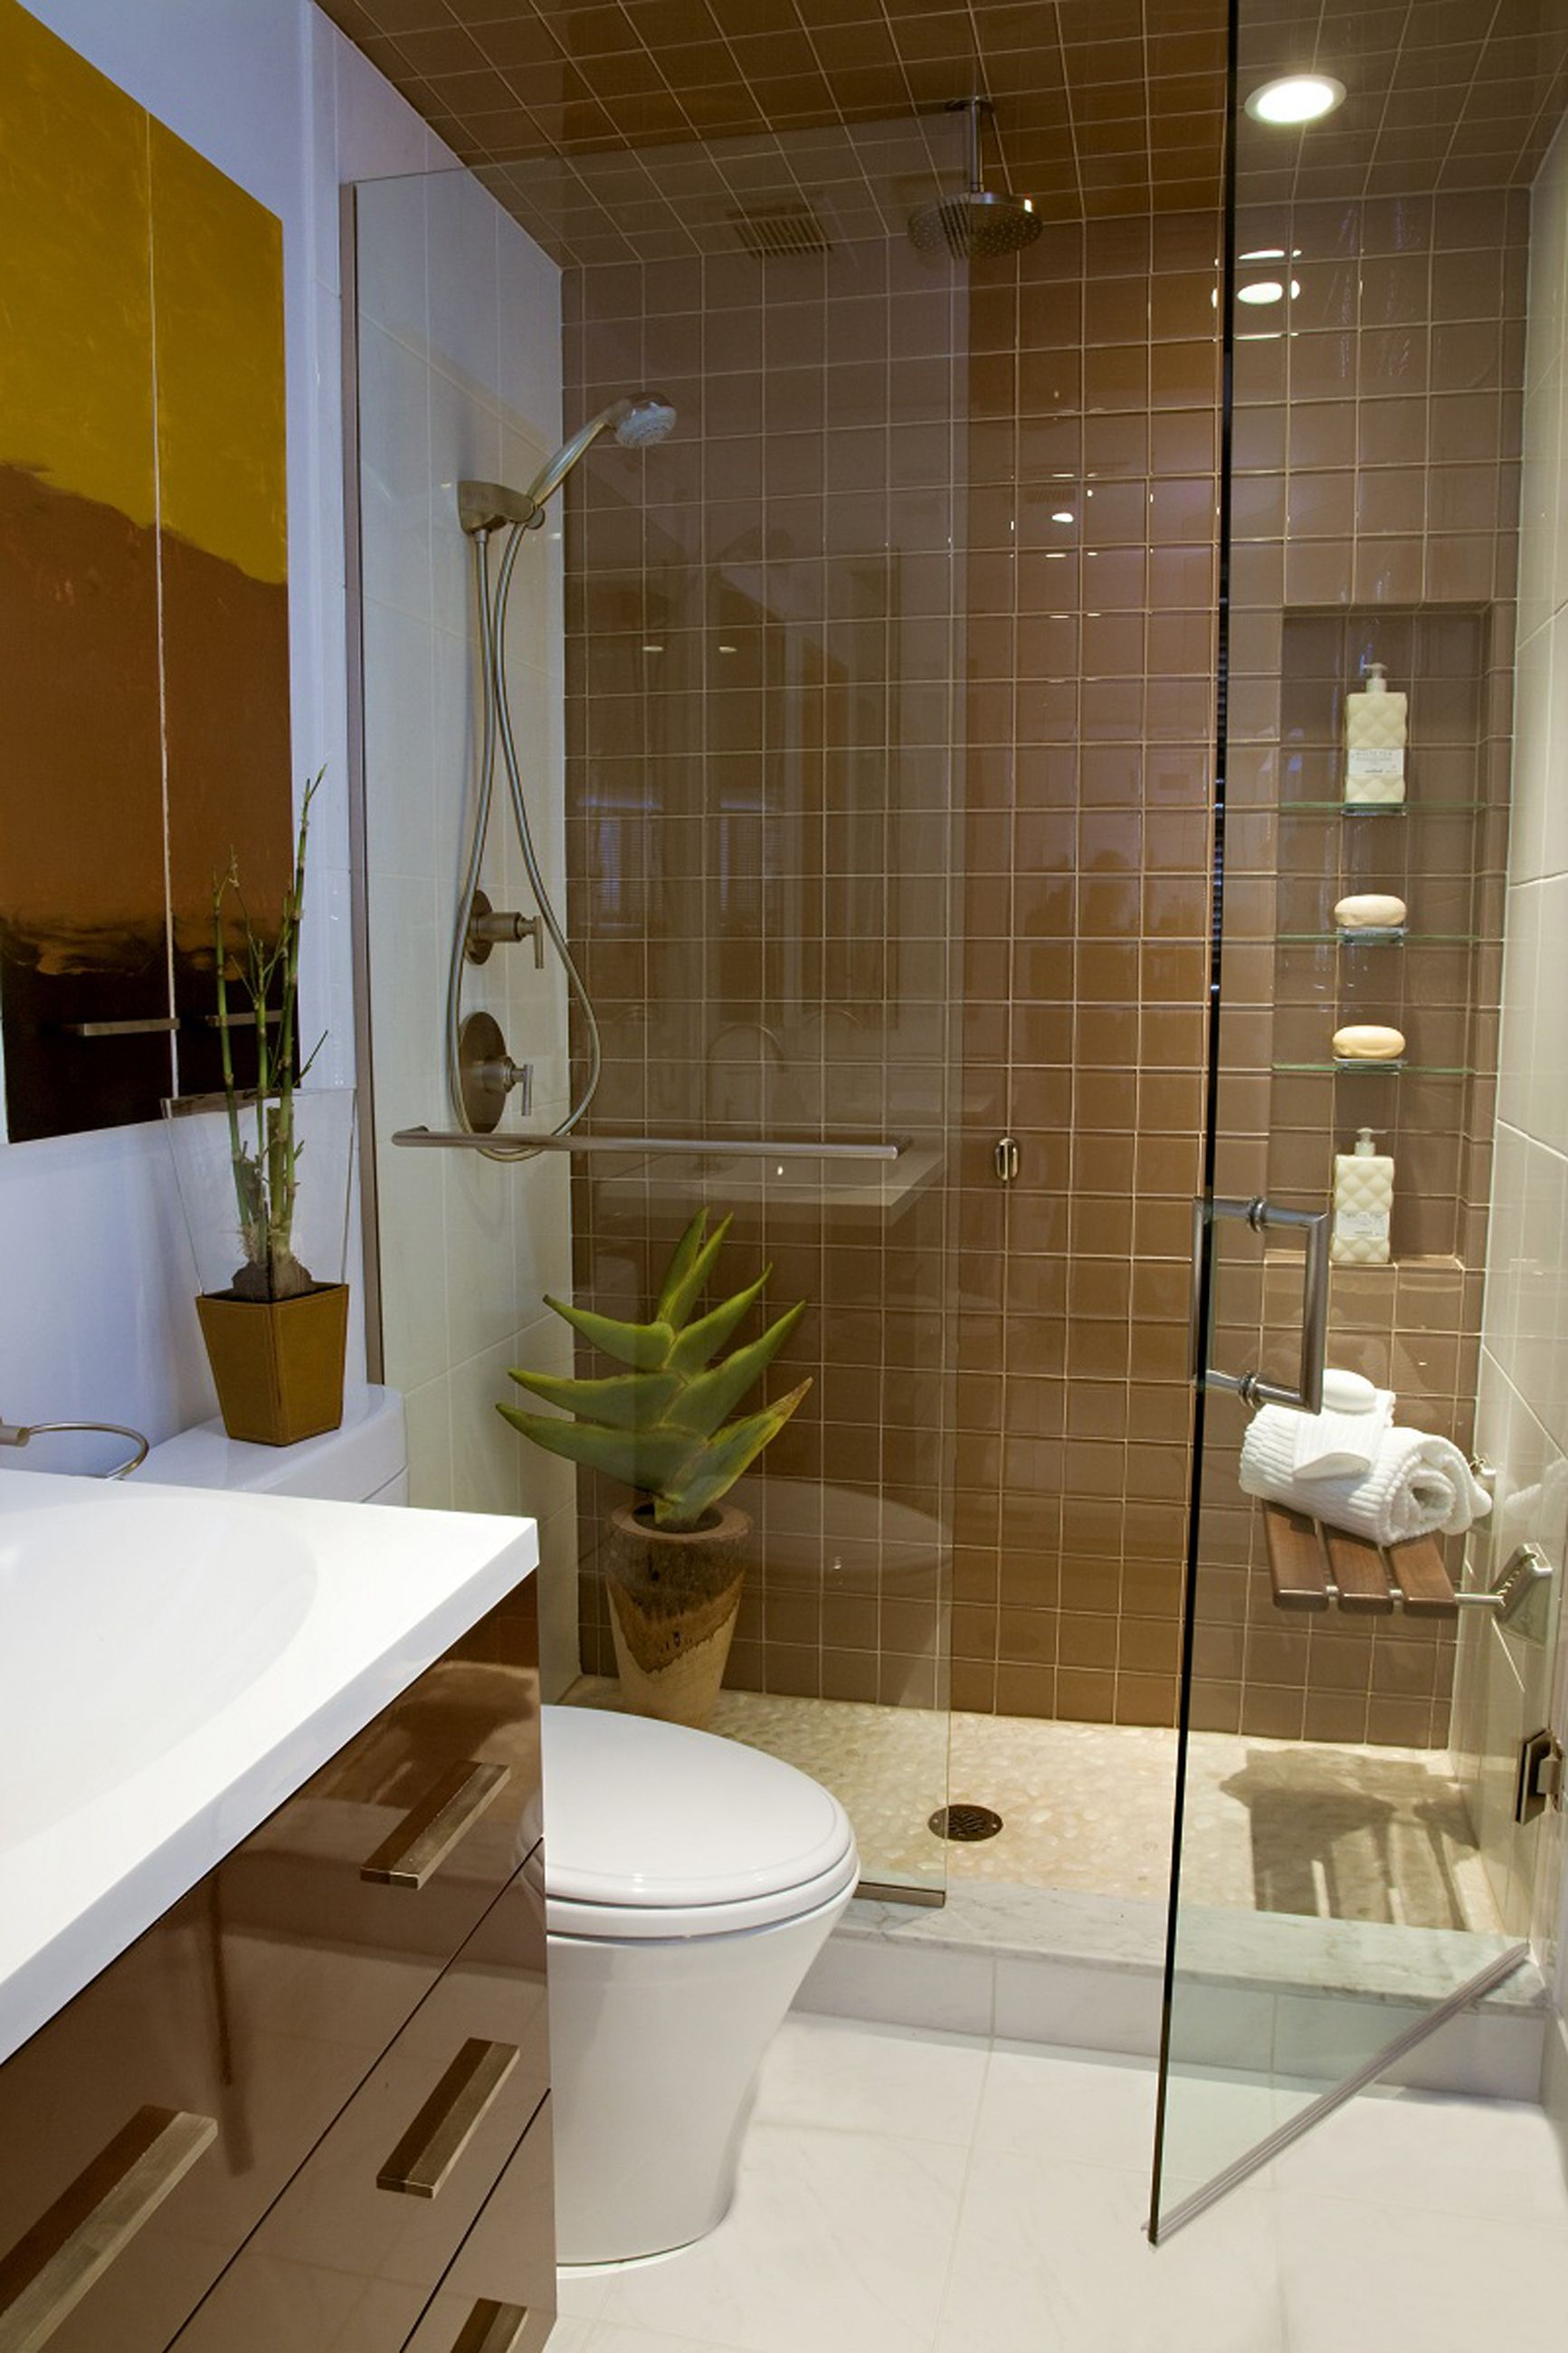 bathrooms with a divider - Google Search | For the Home | Pinterest